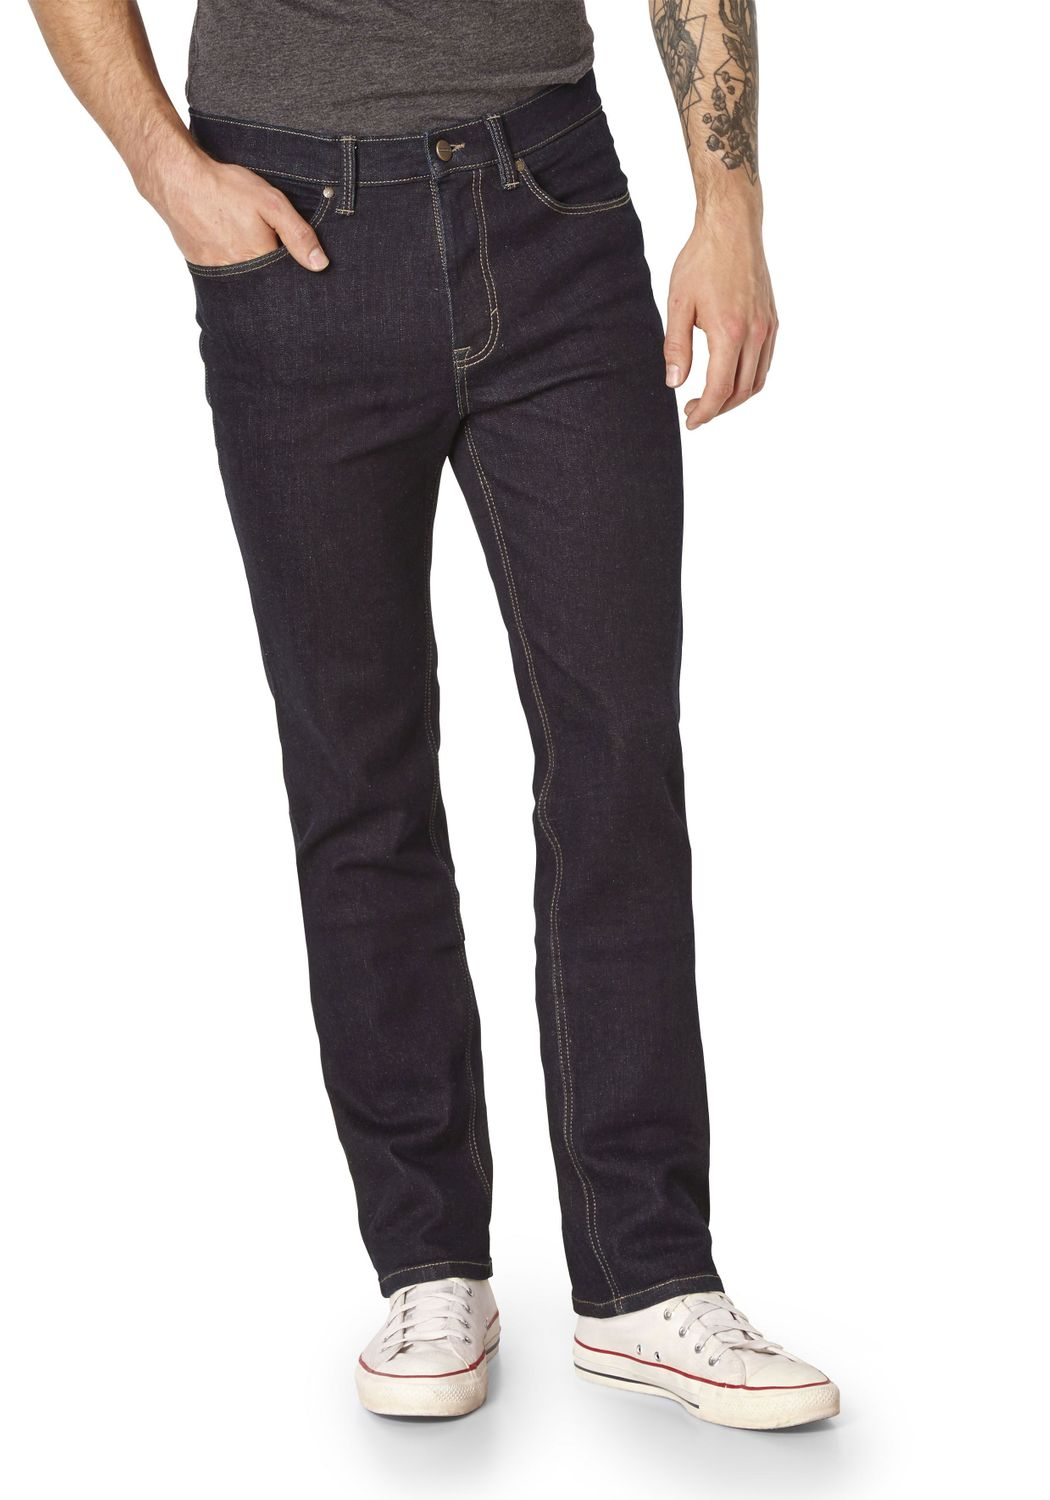 Paddocks Ranger Thermo Stretch Jeans Thermojeans dunkelblau rinse 80089 6203 4399